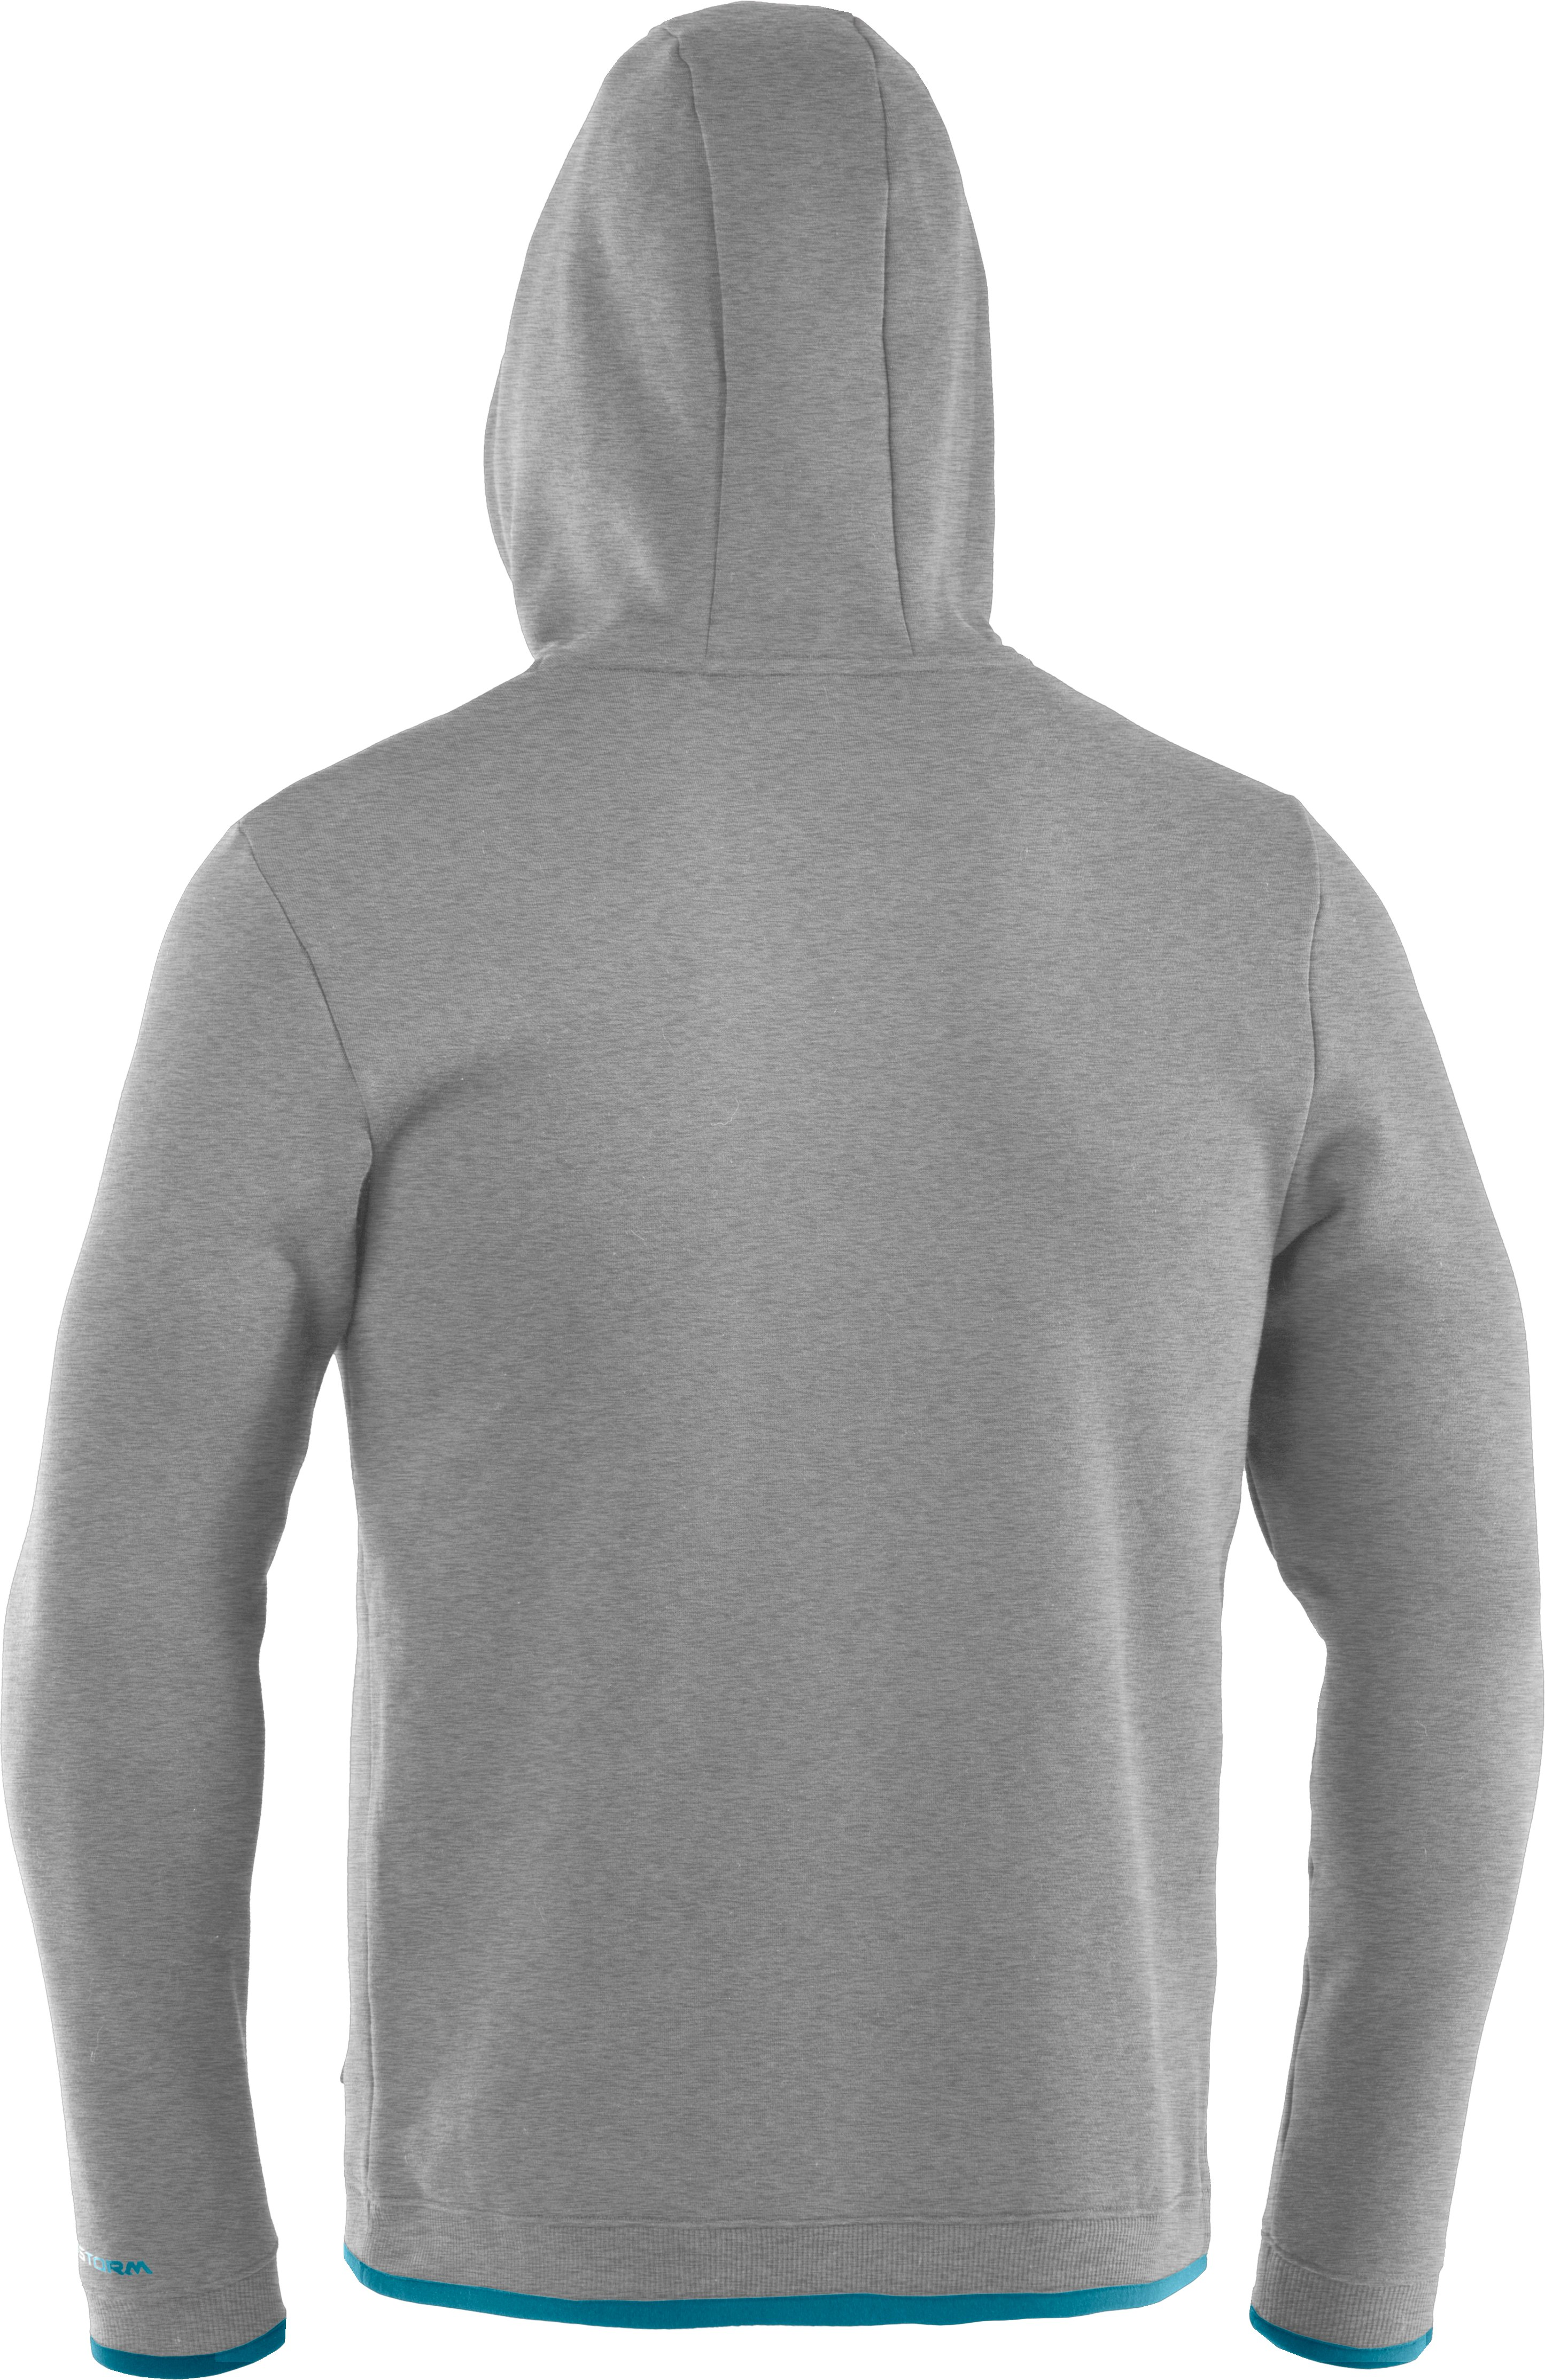 Men's C1N Charged Cotton® Storm Hoodie, True Gray Heather